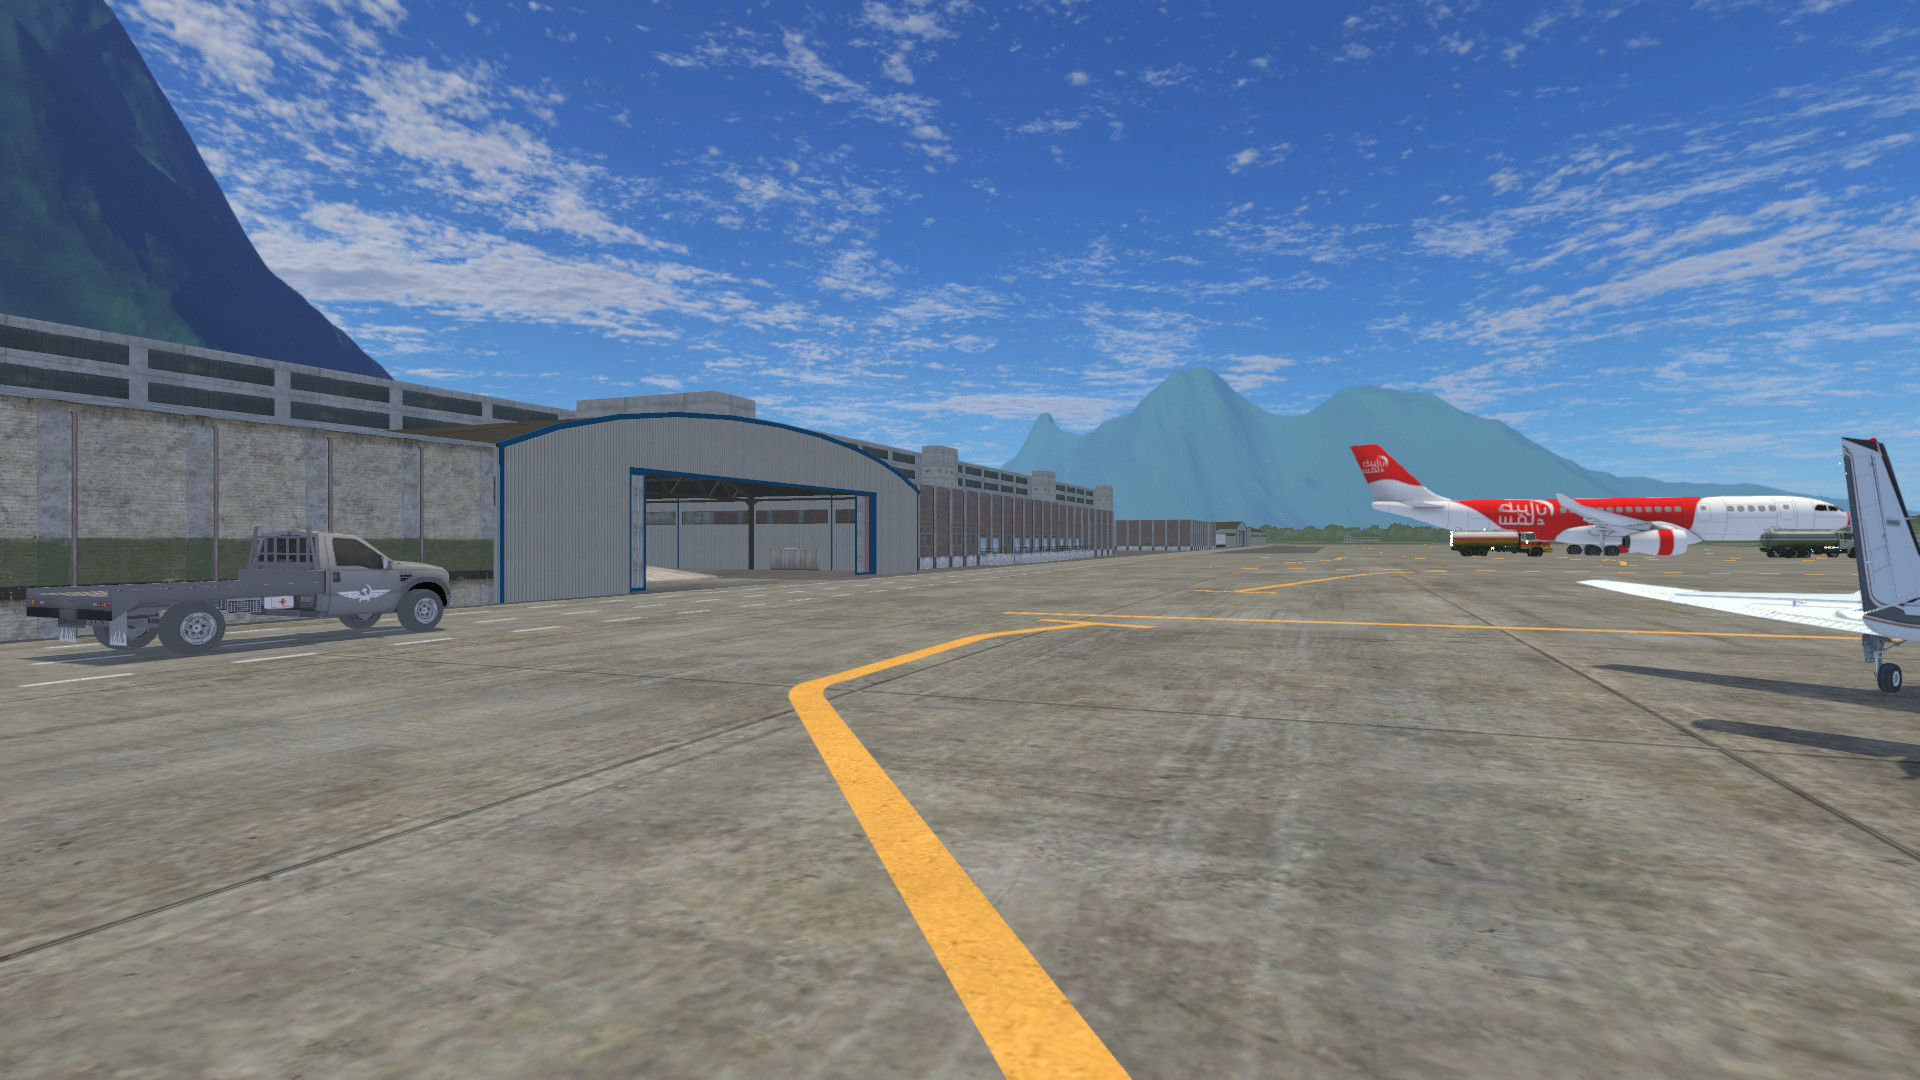 Flight Simulator: VR screenshot